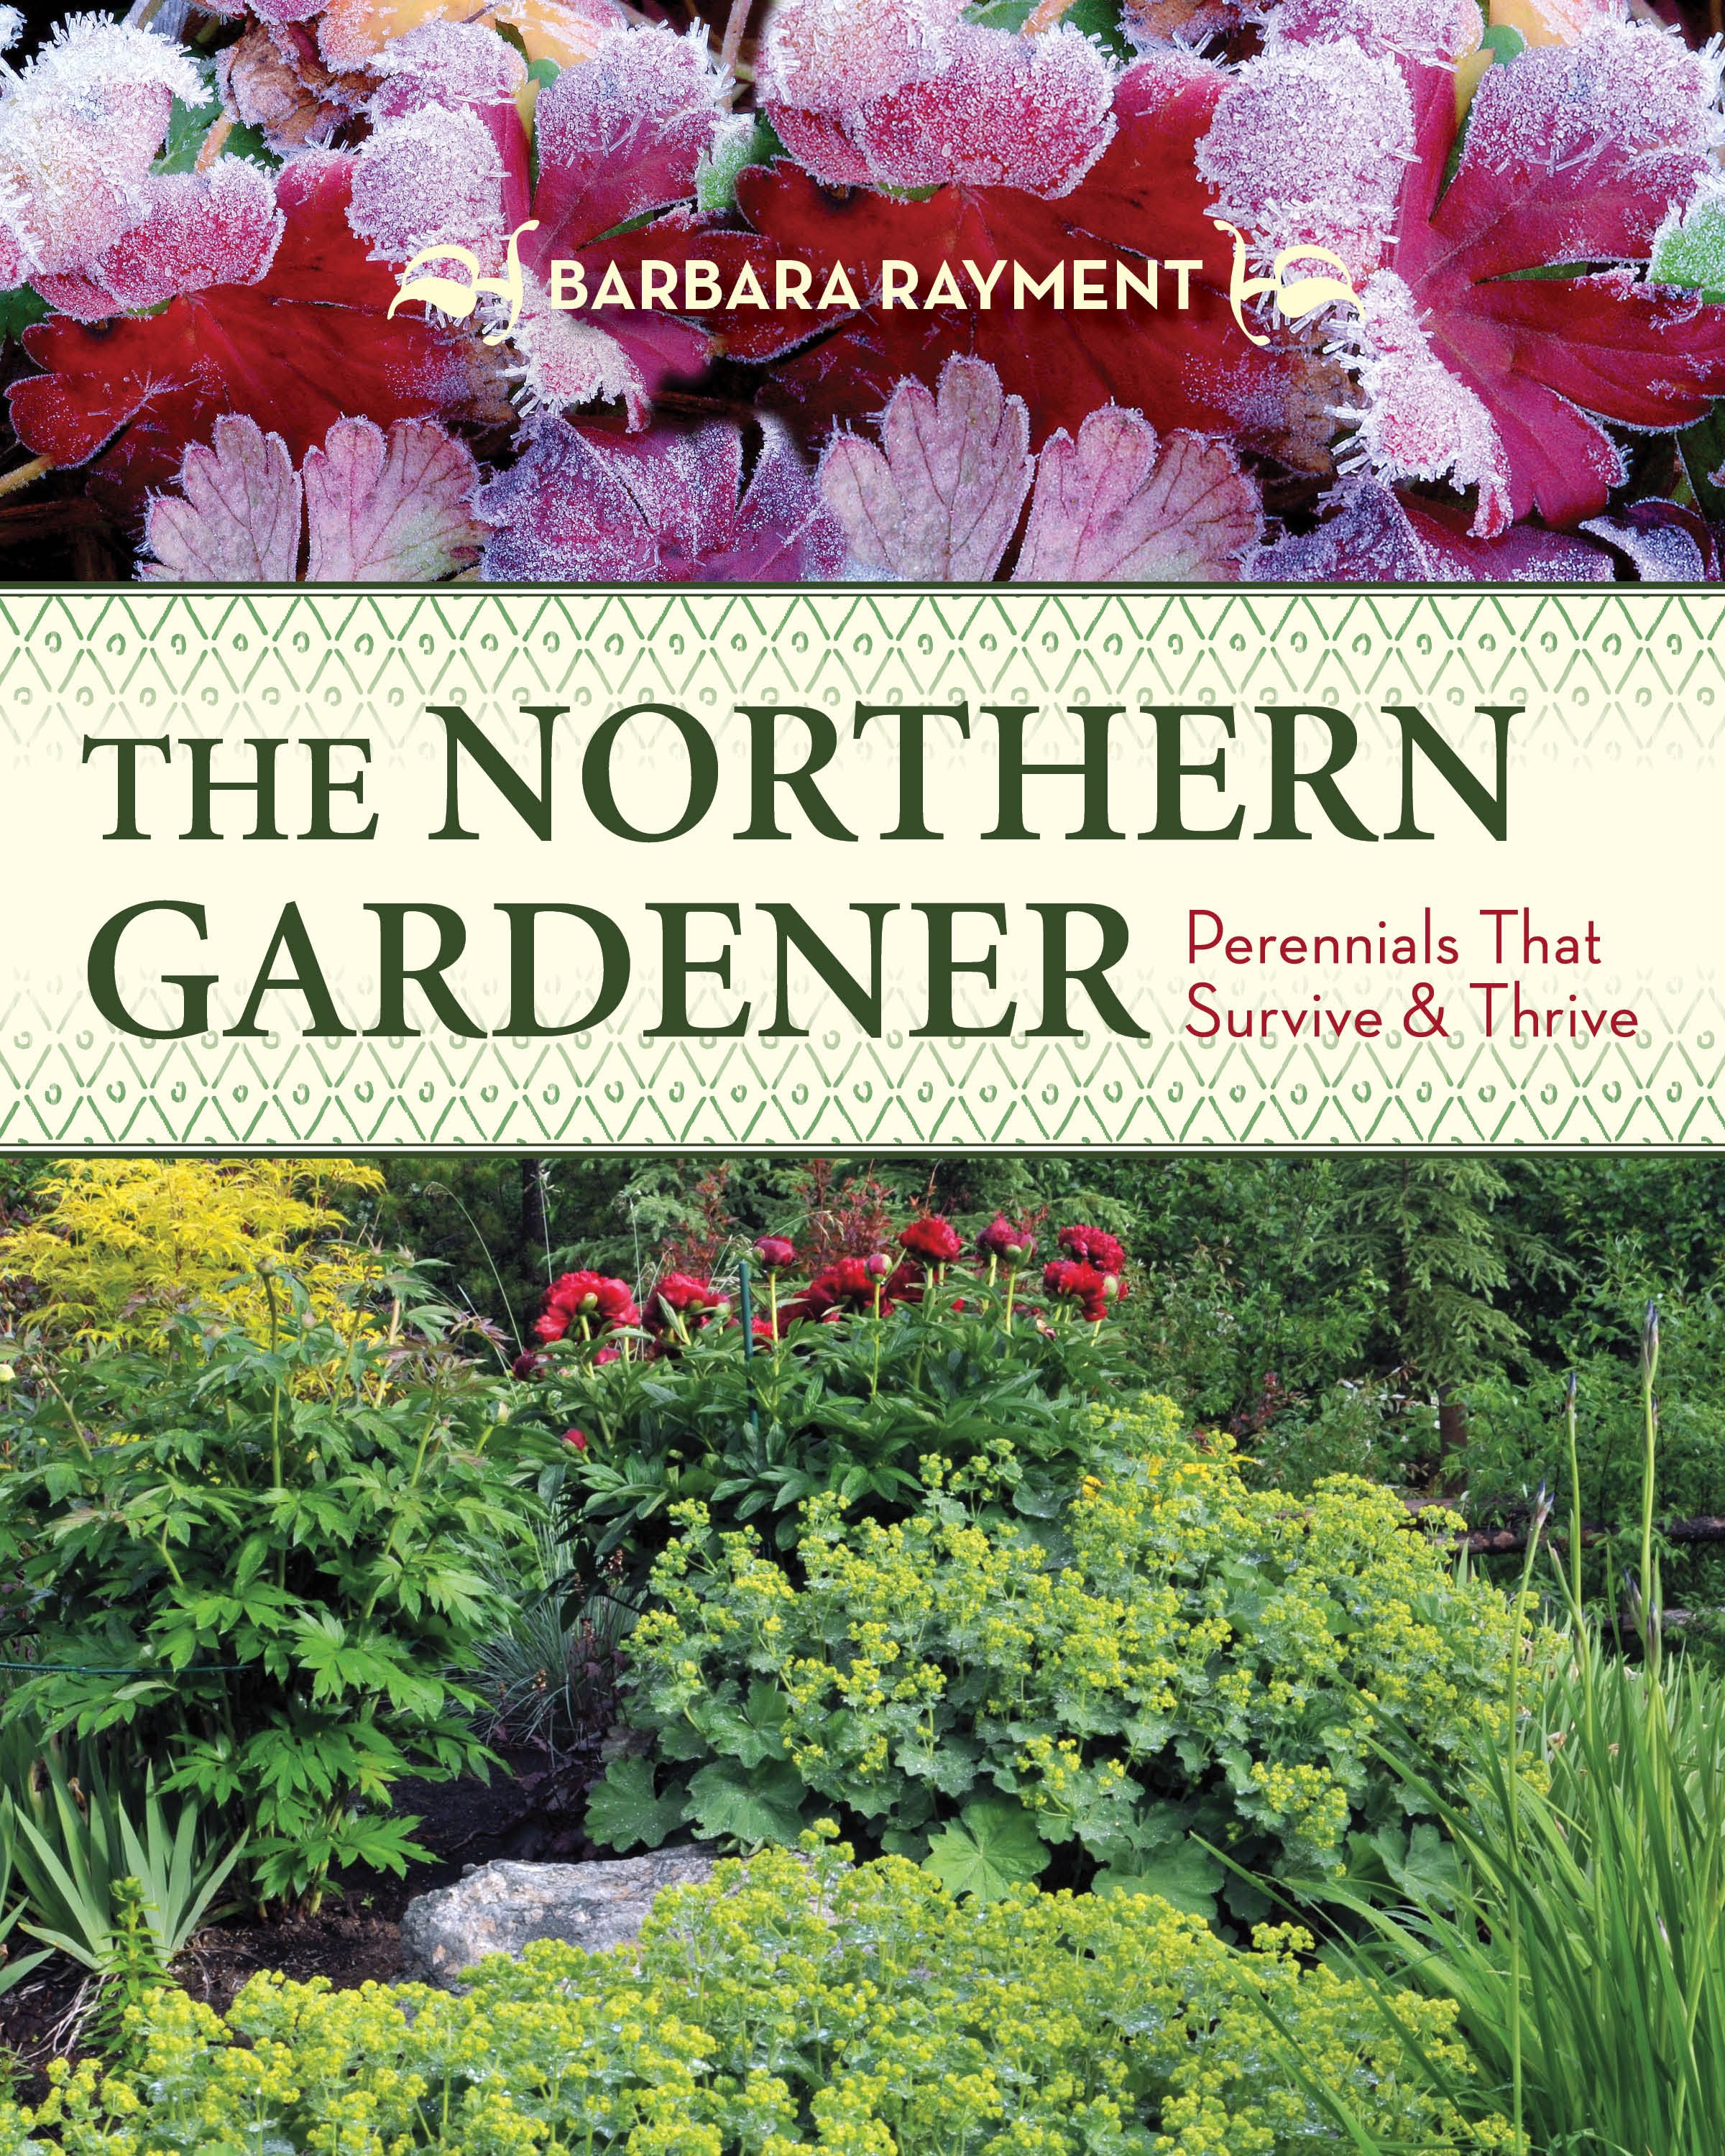 Best Performing Perennials For Usda Zone 2 Canadian Zone 3 A Book Review Journal Garden De Gardening Books Organic Gardening Tips Cold Climate Gardening